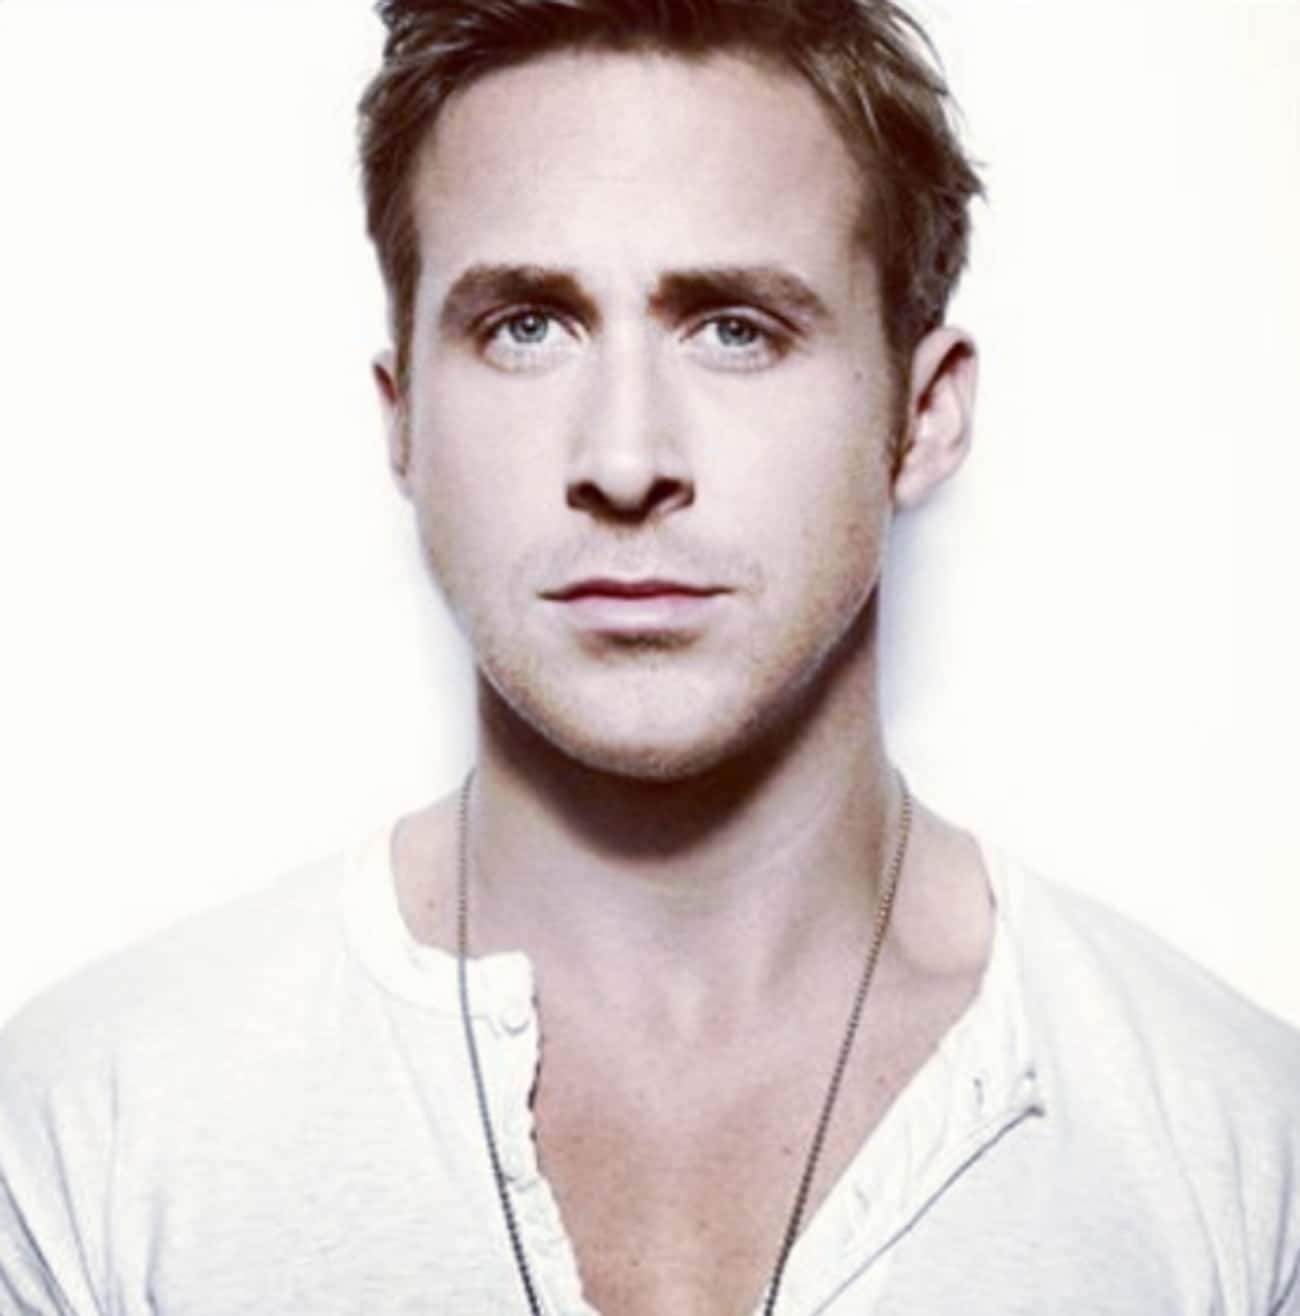 Ryan Gosling is listed (or ranked) 4 on the list Male Celebrities Who Are Feminists